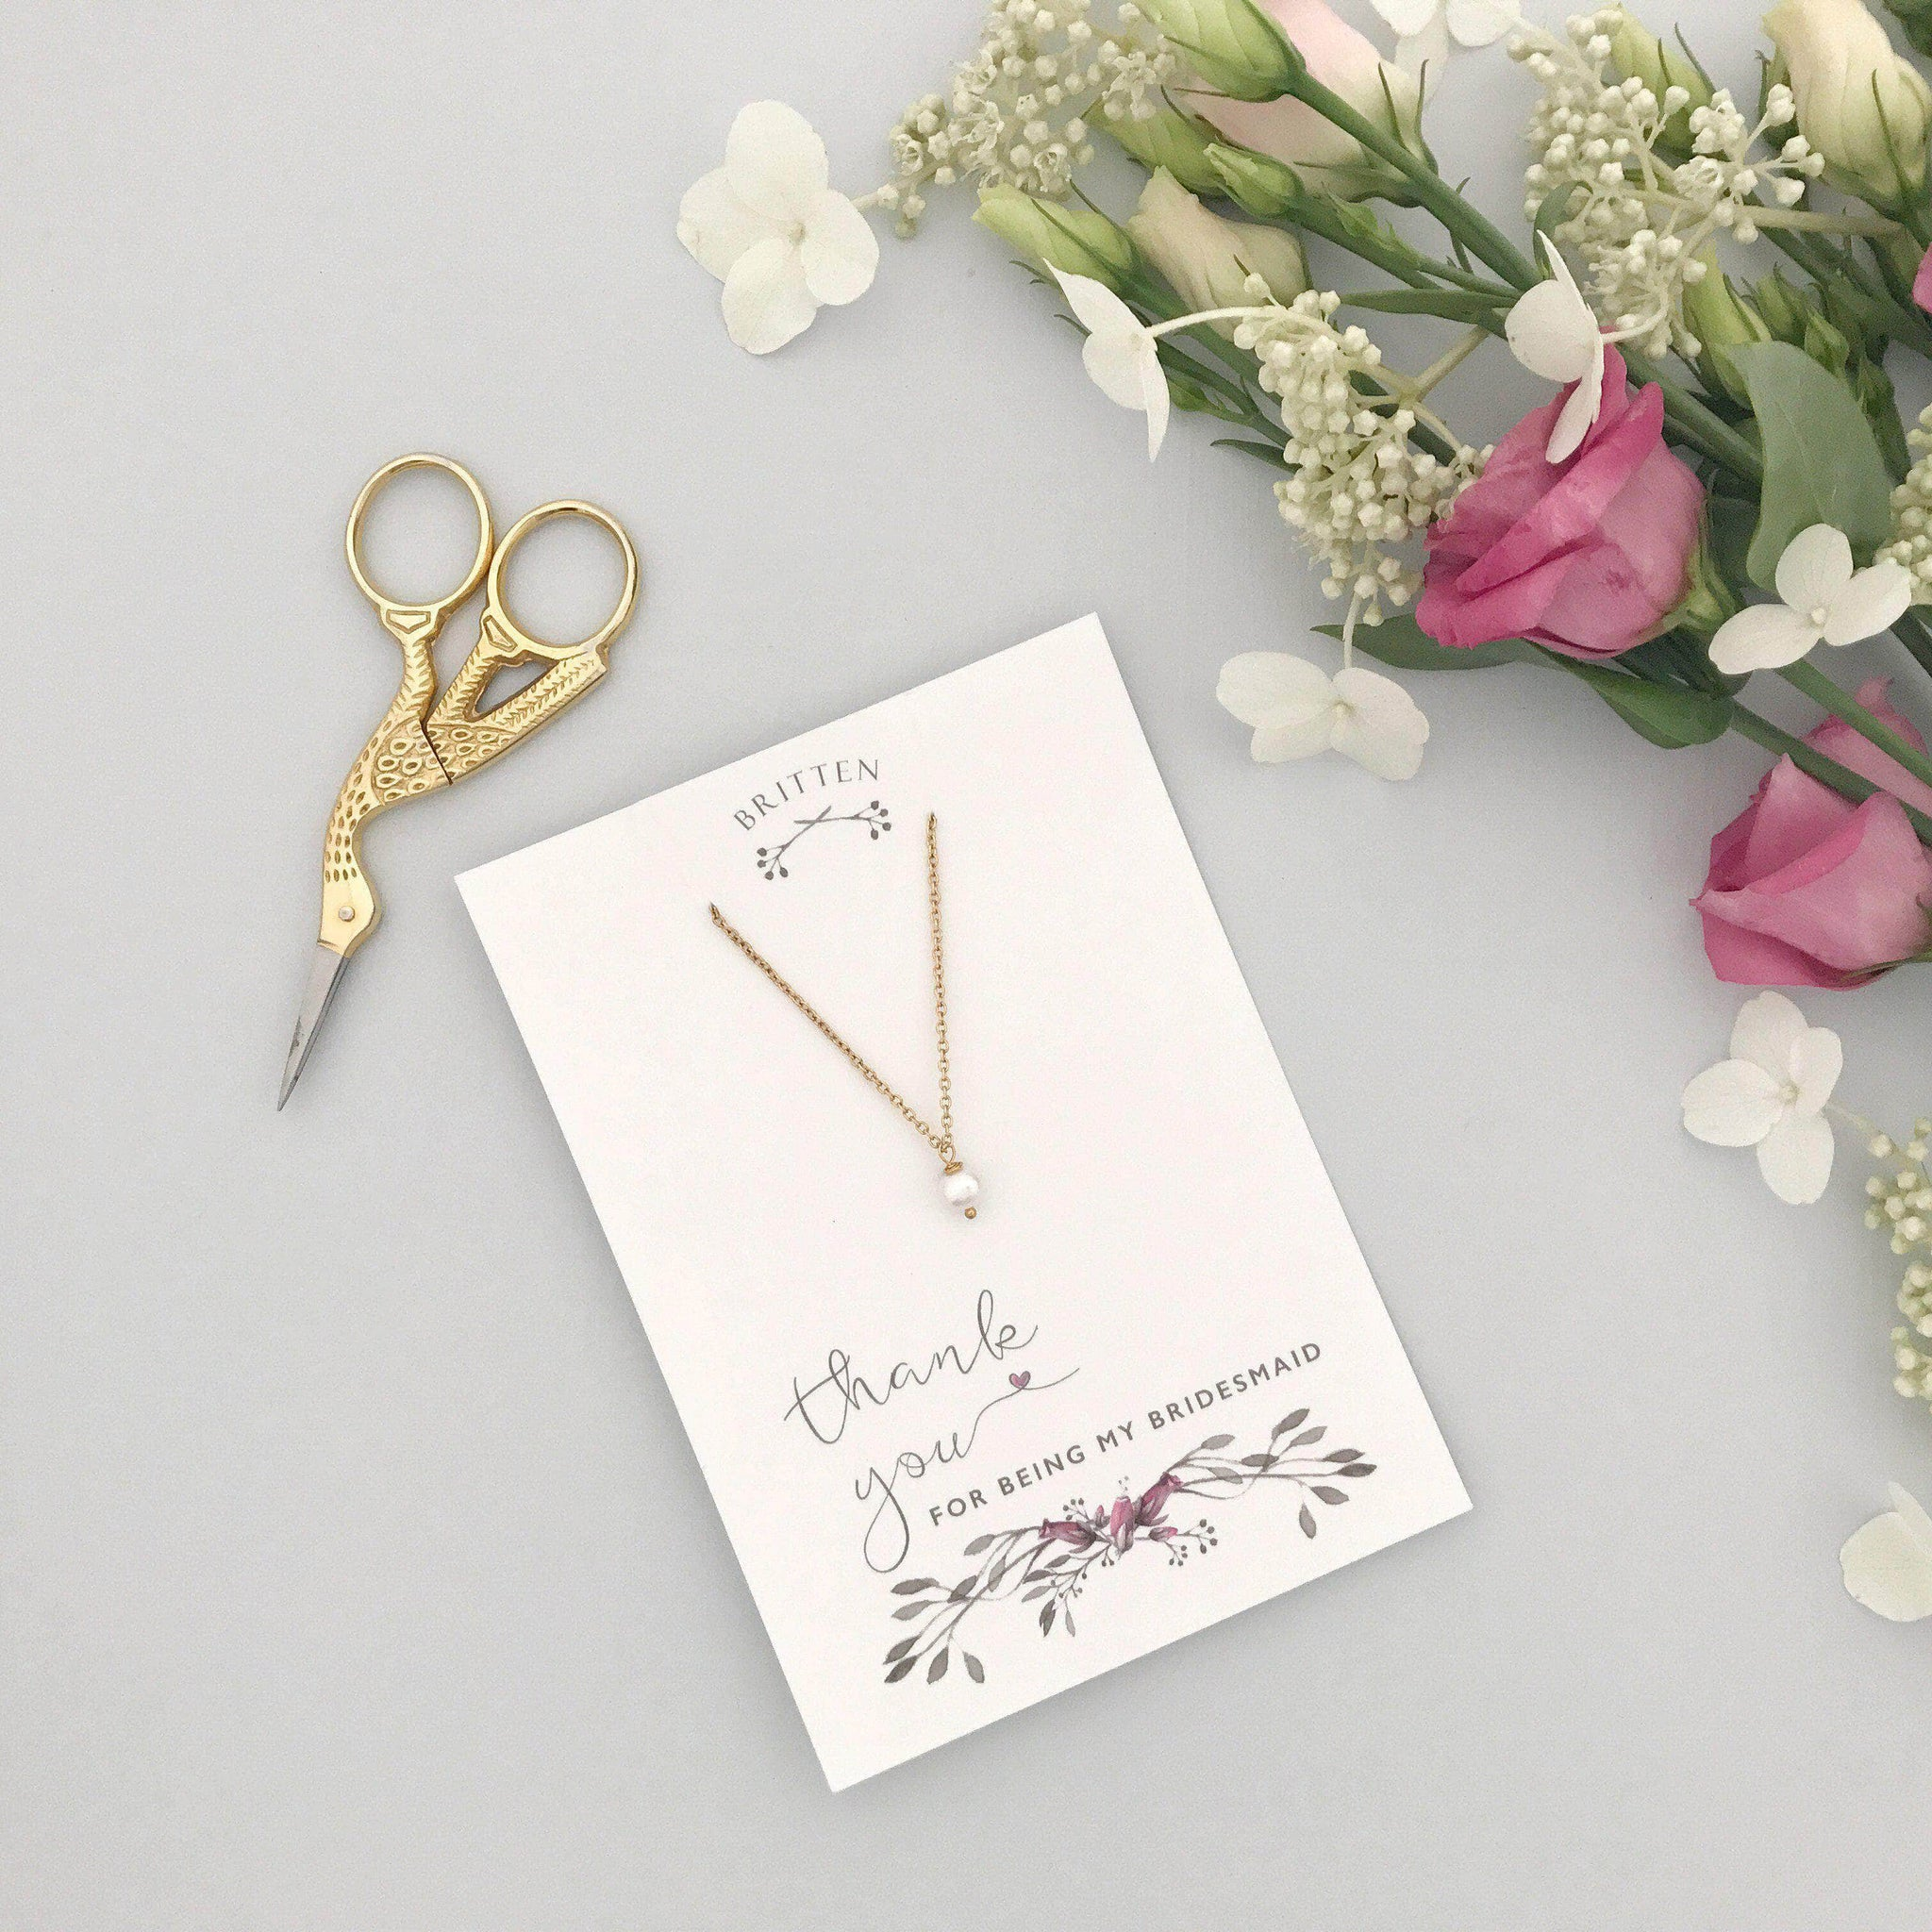 Gold and pearl bridesmaid necklace